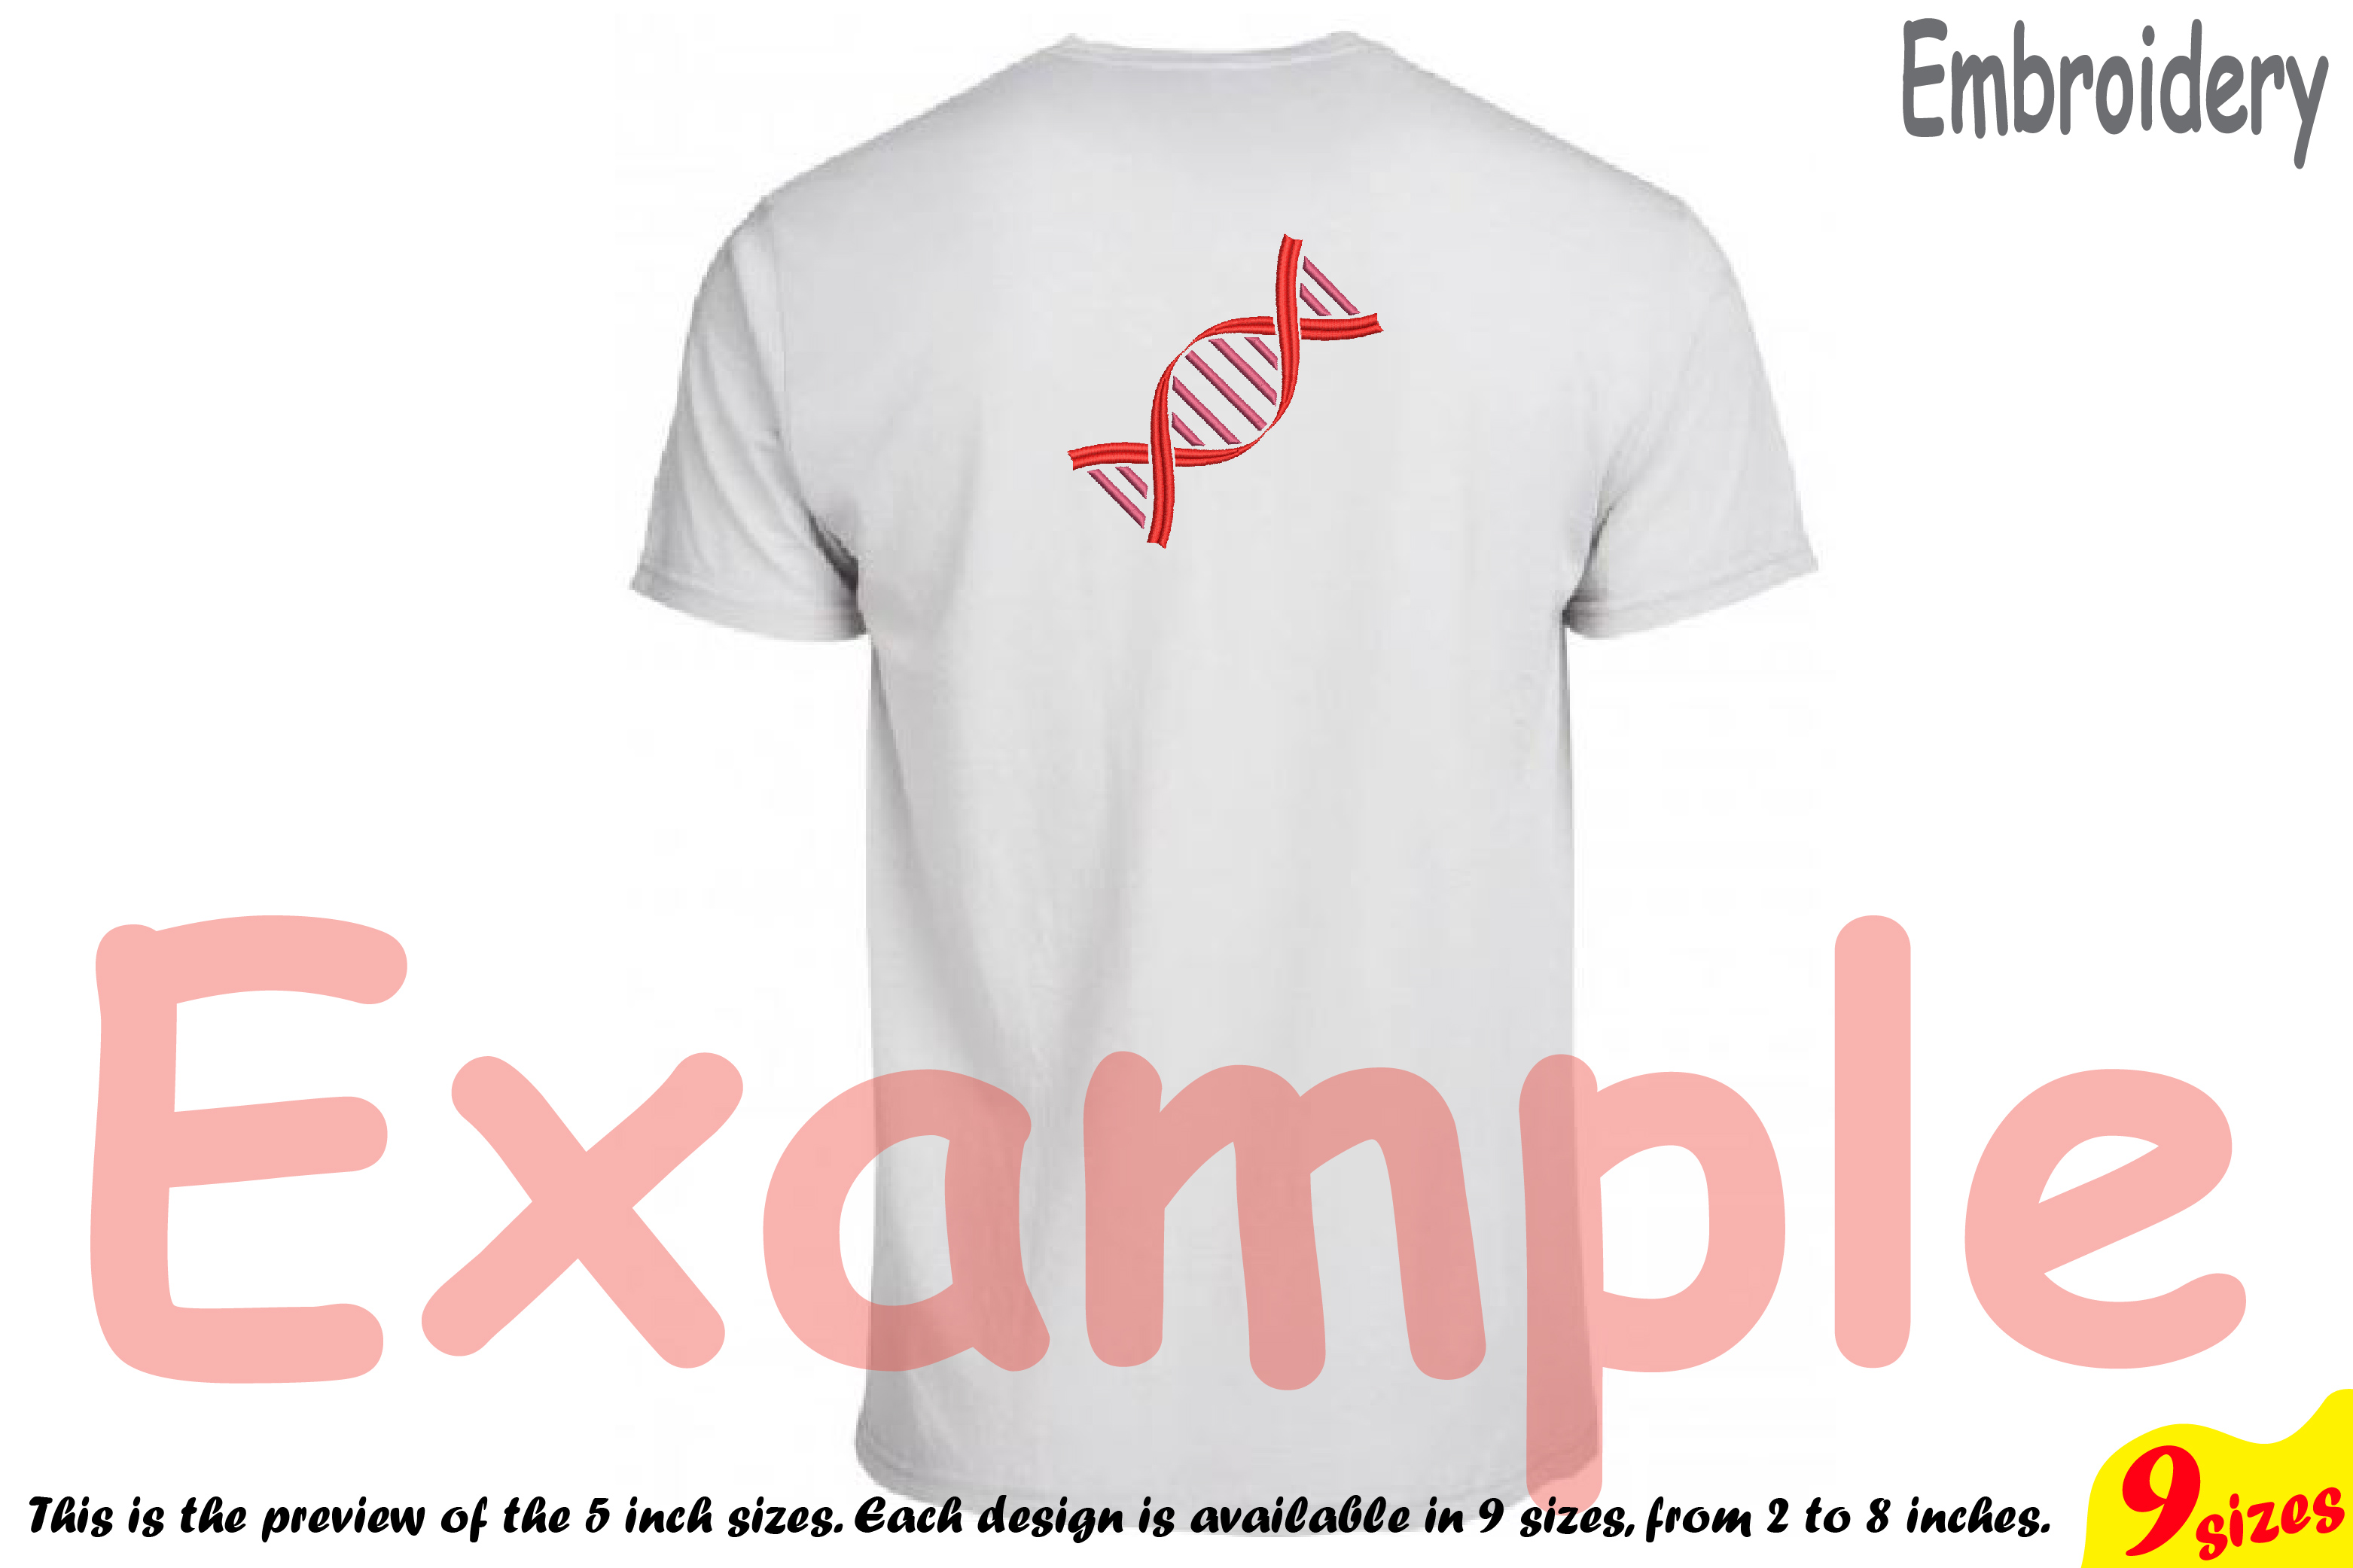 DNA Structure - Science - Designs for Embroidery Machine Instant Download Commercial Use digital file 4x4 5x7 hoop icon symbol sign 194b example image 2